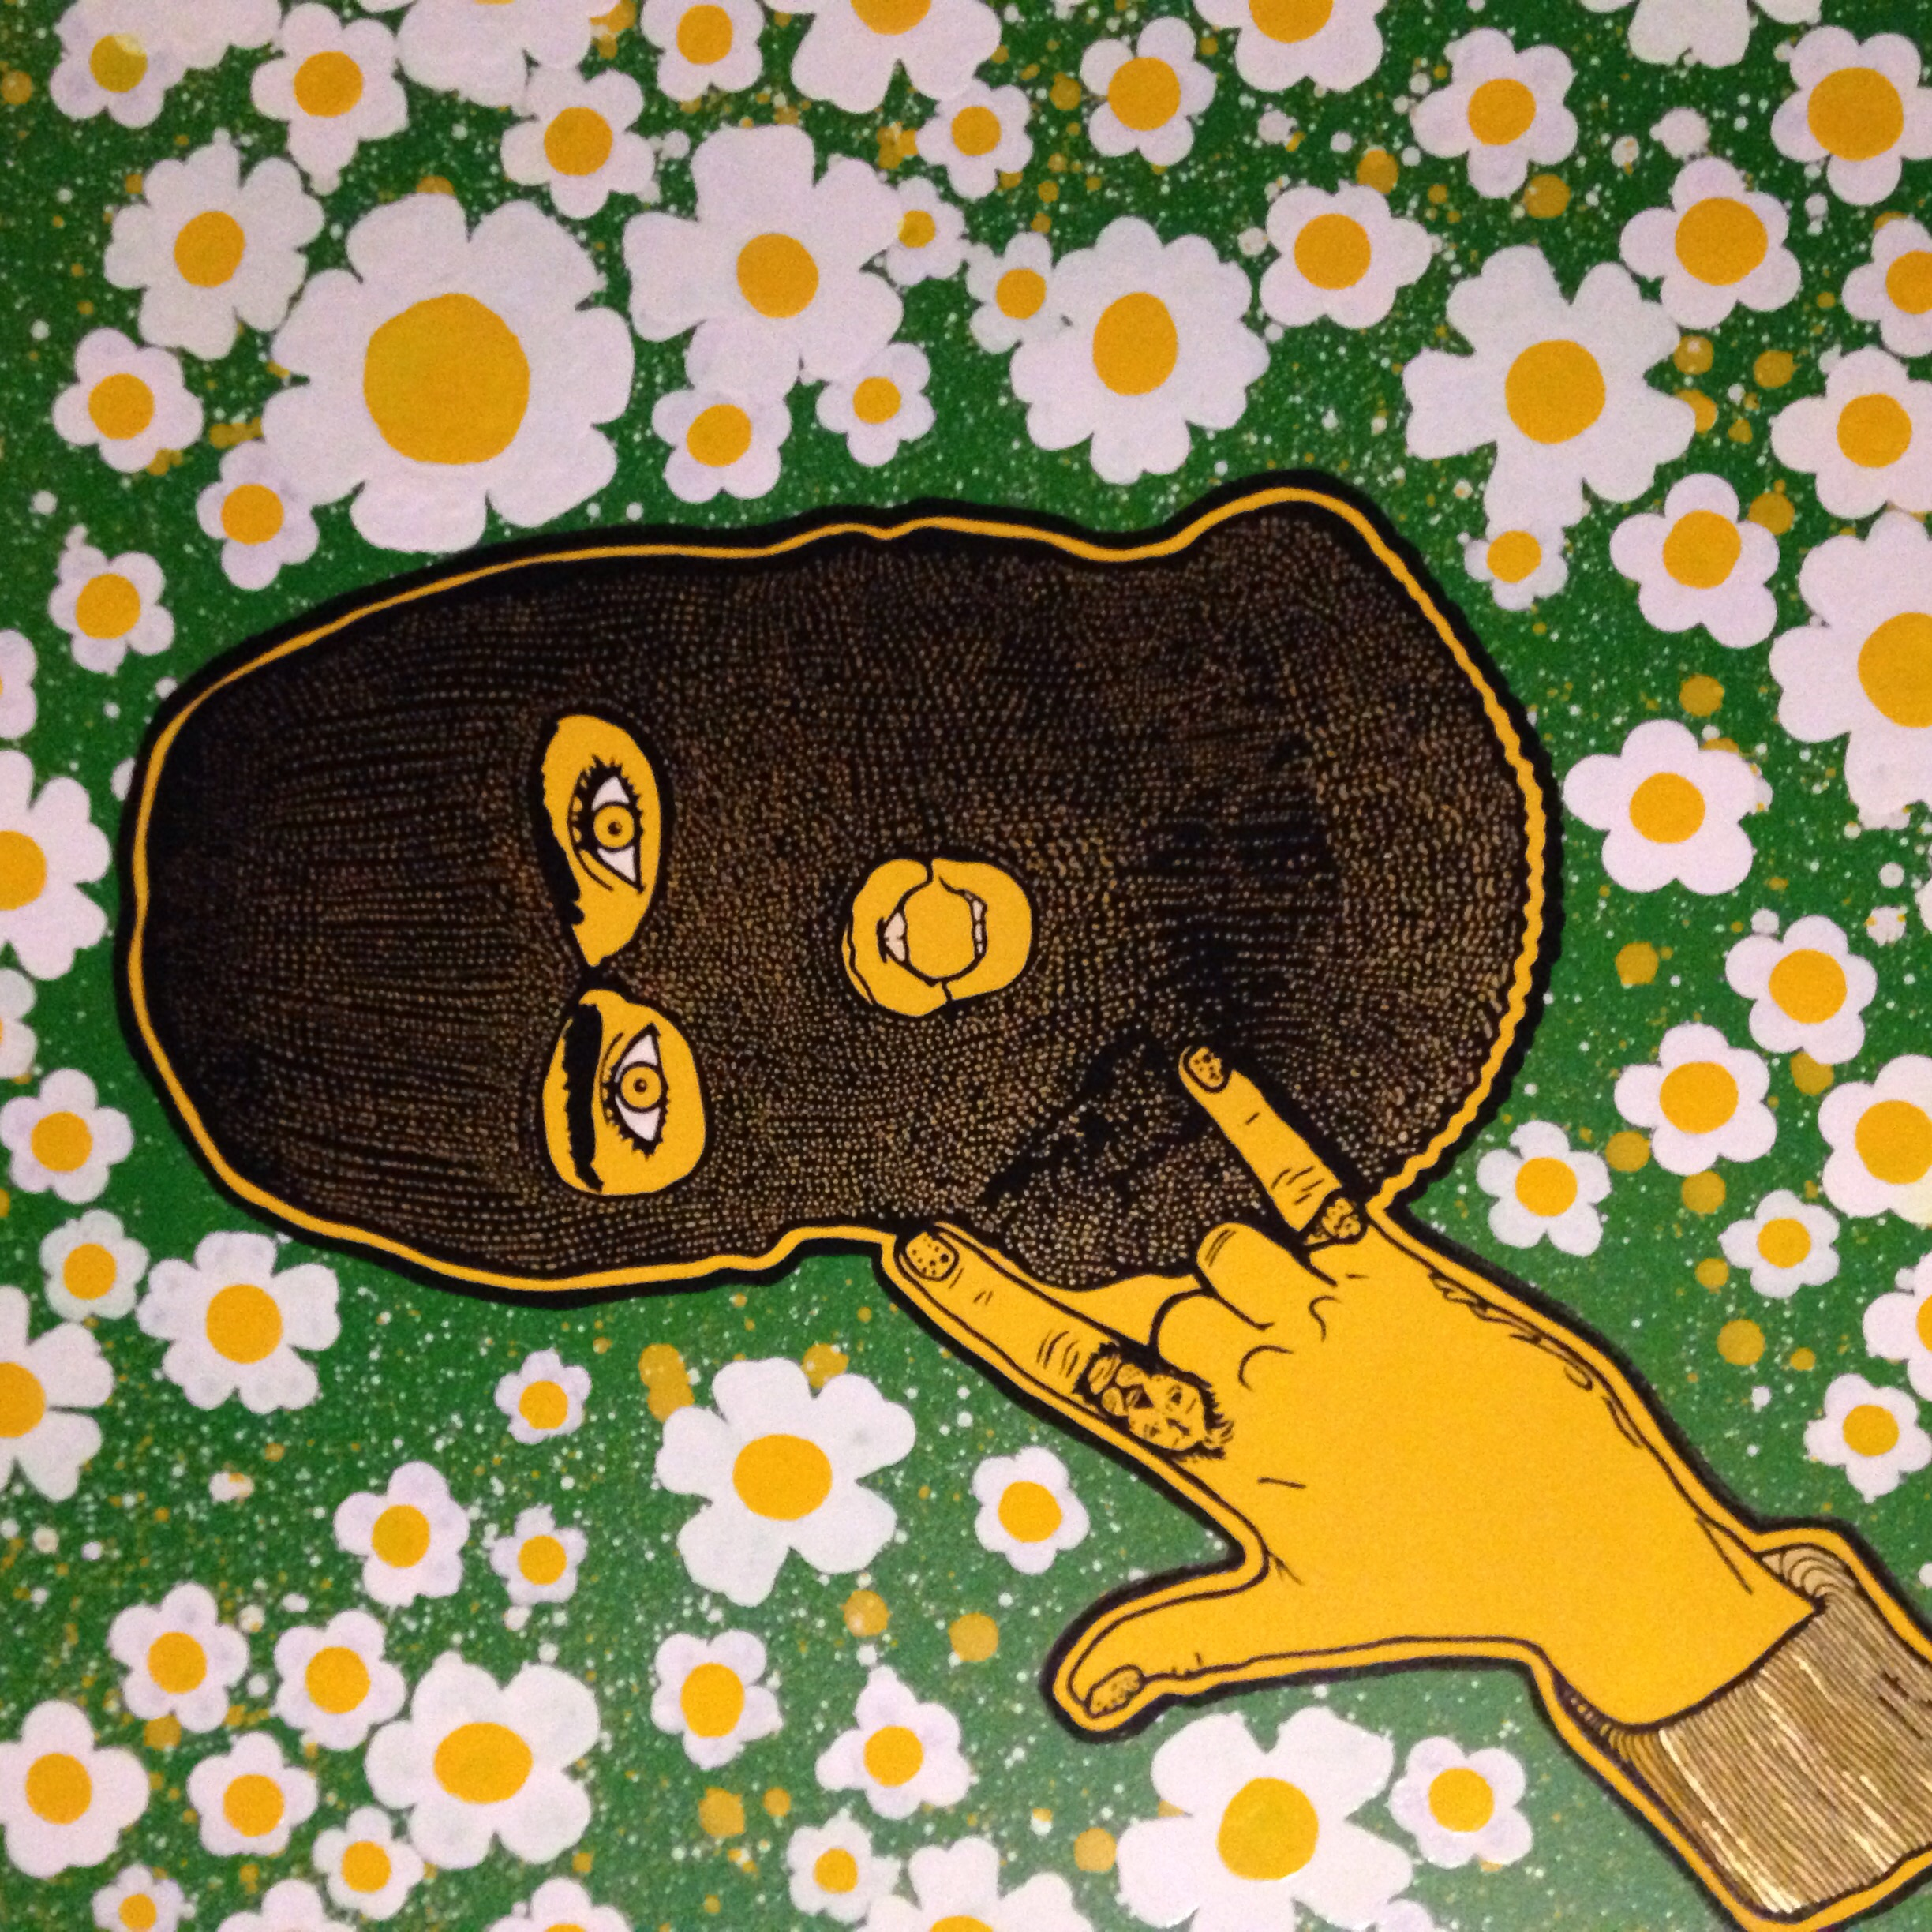 Flower Balaclava - being playful painting aggressive hats and peaceful flowers